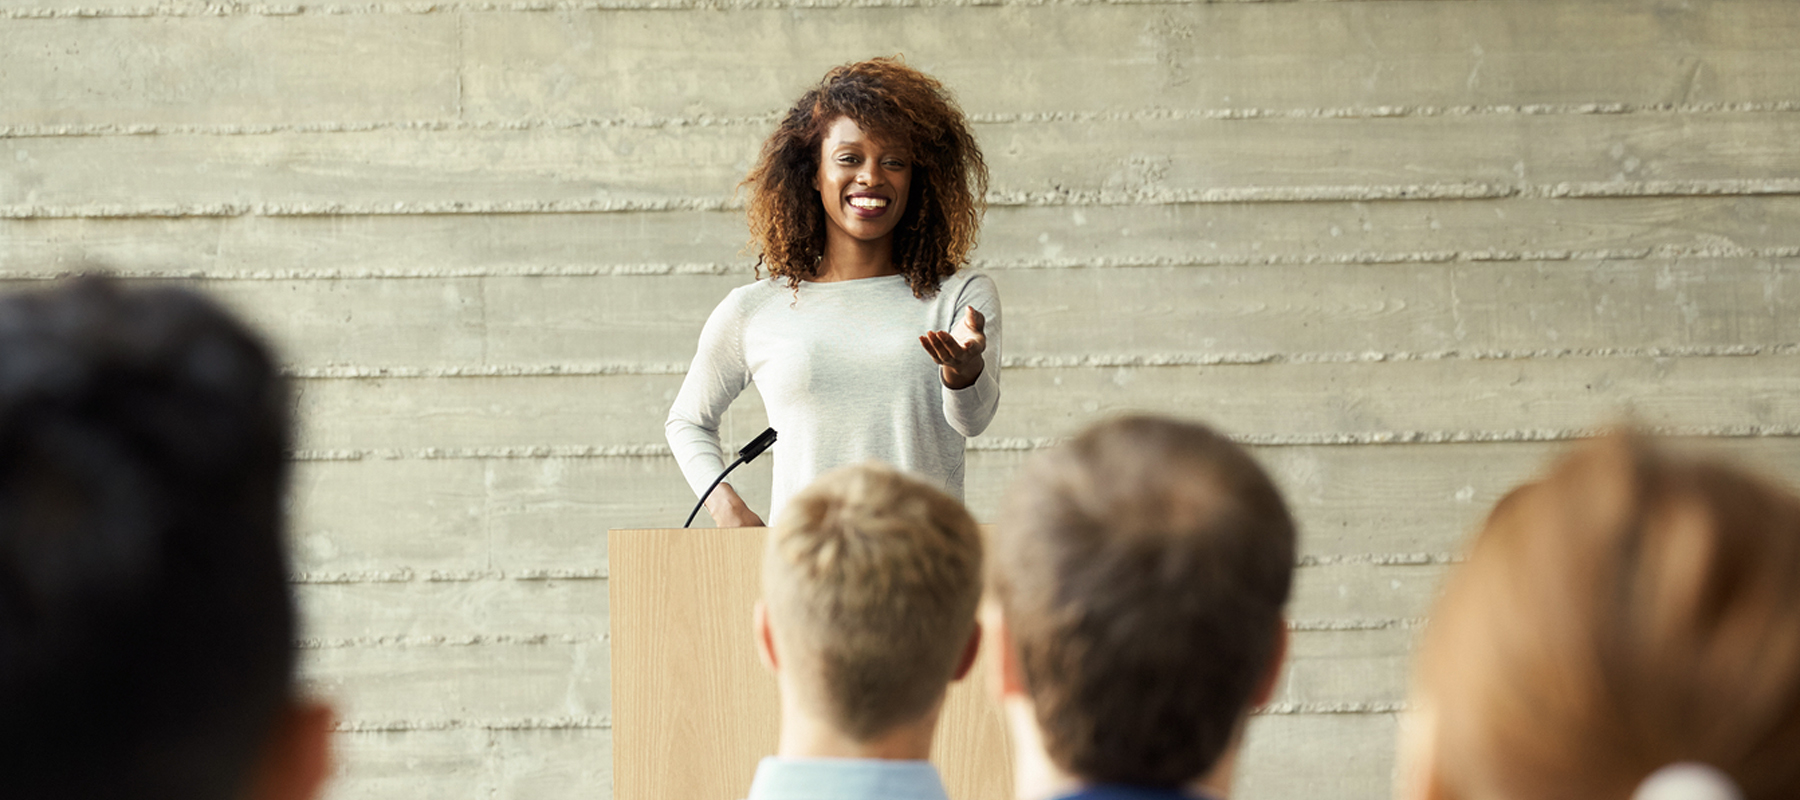 female speaker at a podium in front of a crowd